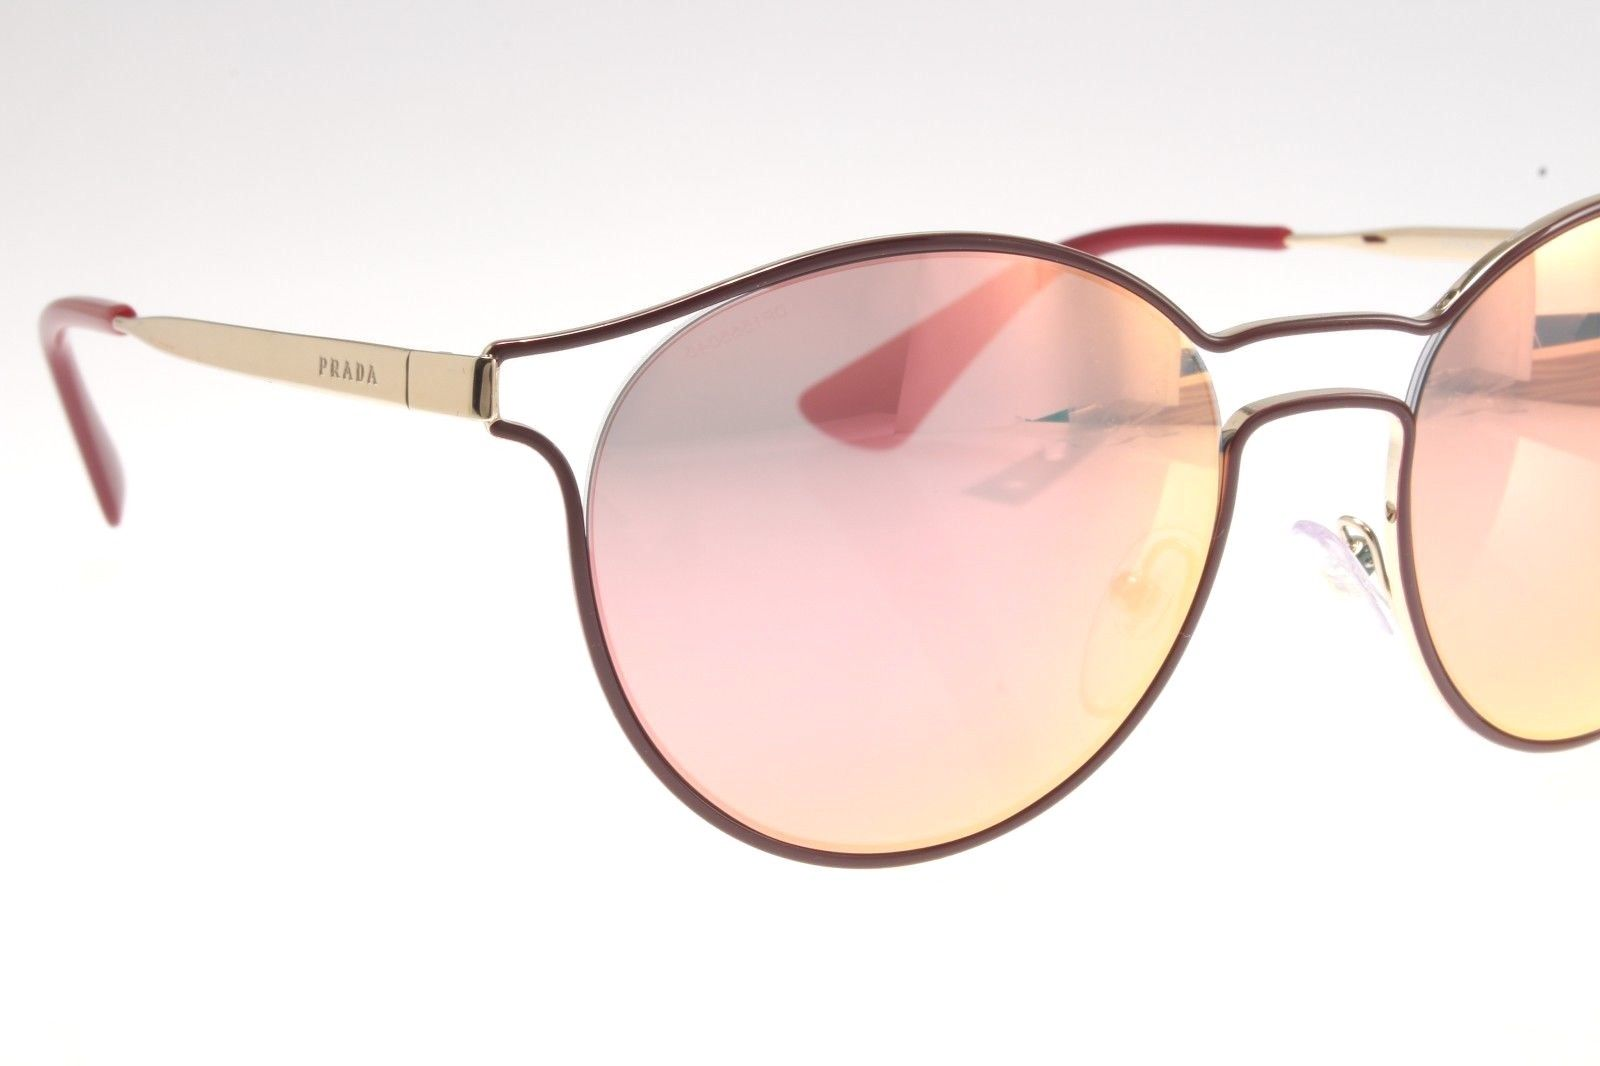 083a6477a1 New original Prada SPR 62SS USH-5L2 53 Women Sunglasses Bordeaux   Pale Gold